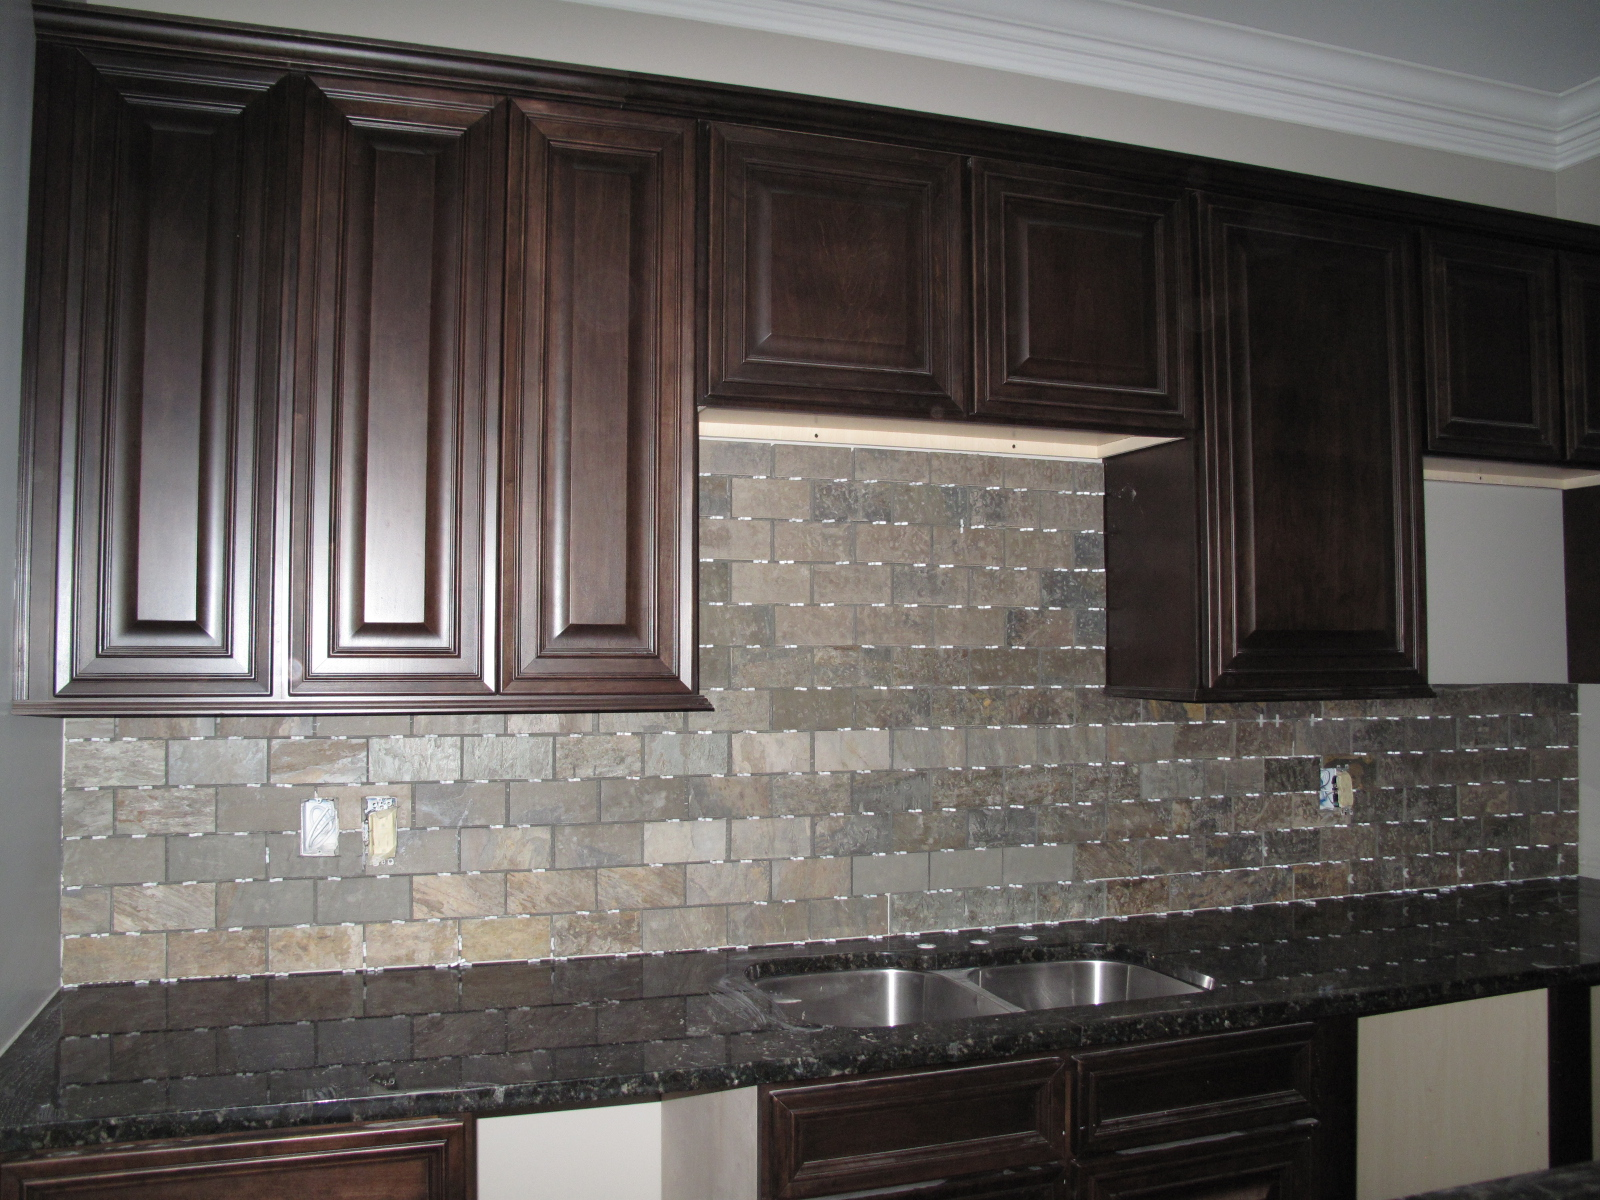 1000 Images About Backsplash On Pinterest